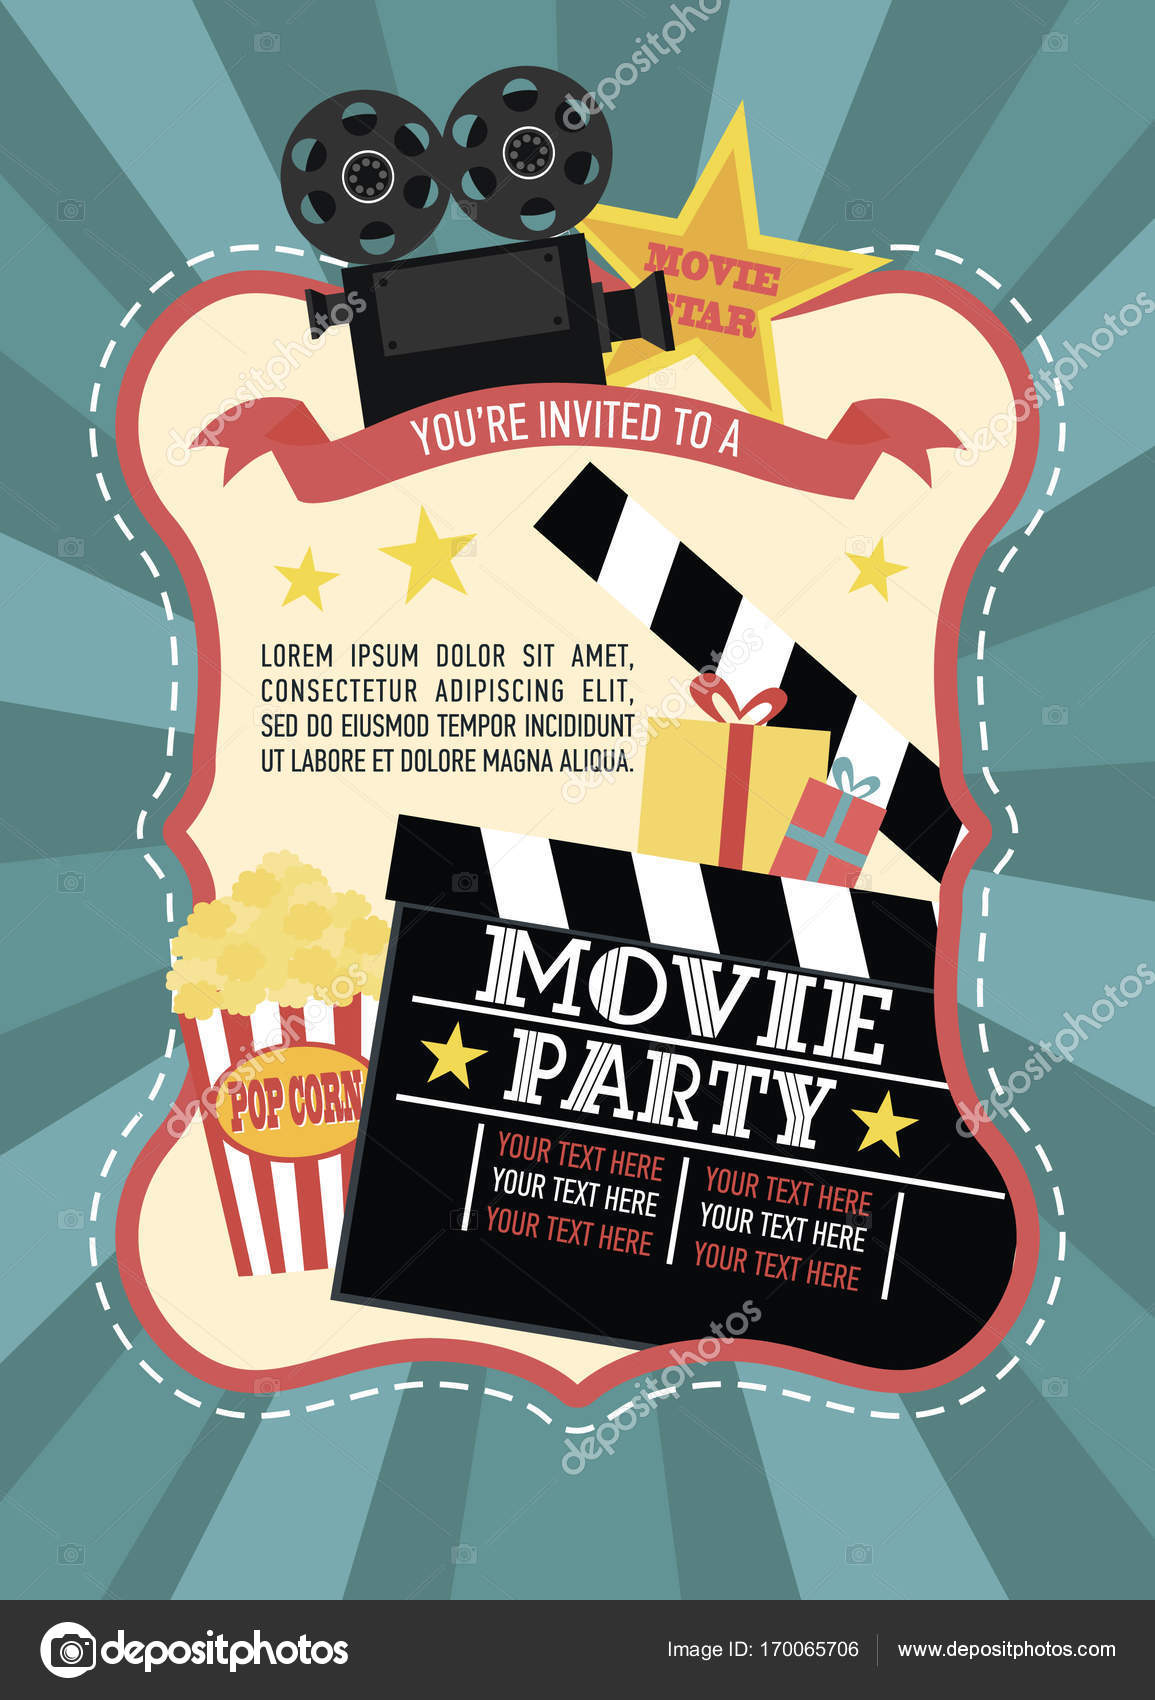 Birthday party invitation card movie party hollywood party cinema birthday party invitation for movie party hollywood party cinema poster vector illustration vector by vissay stopboris Image collections